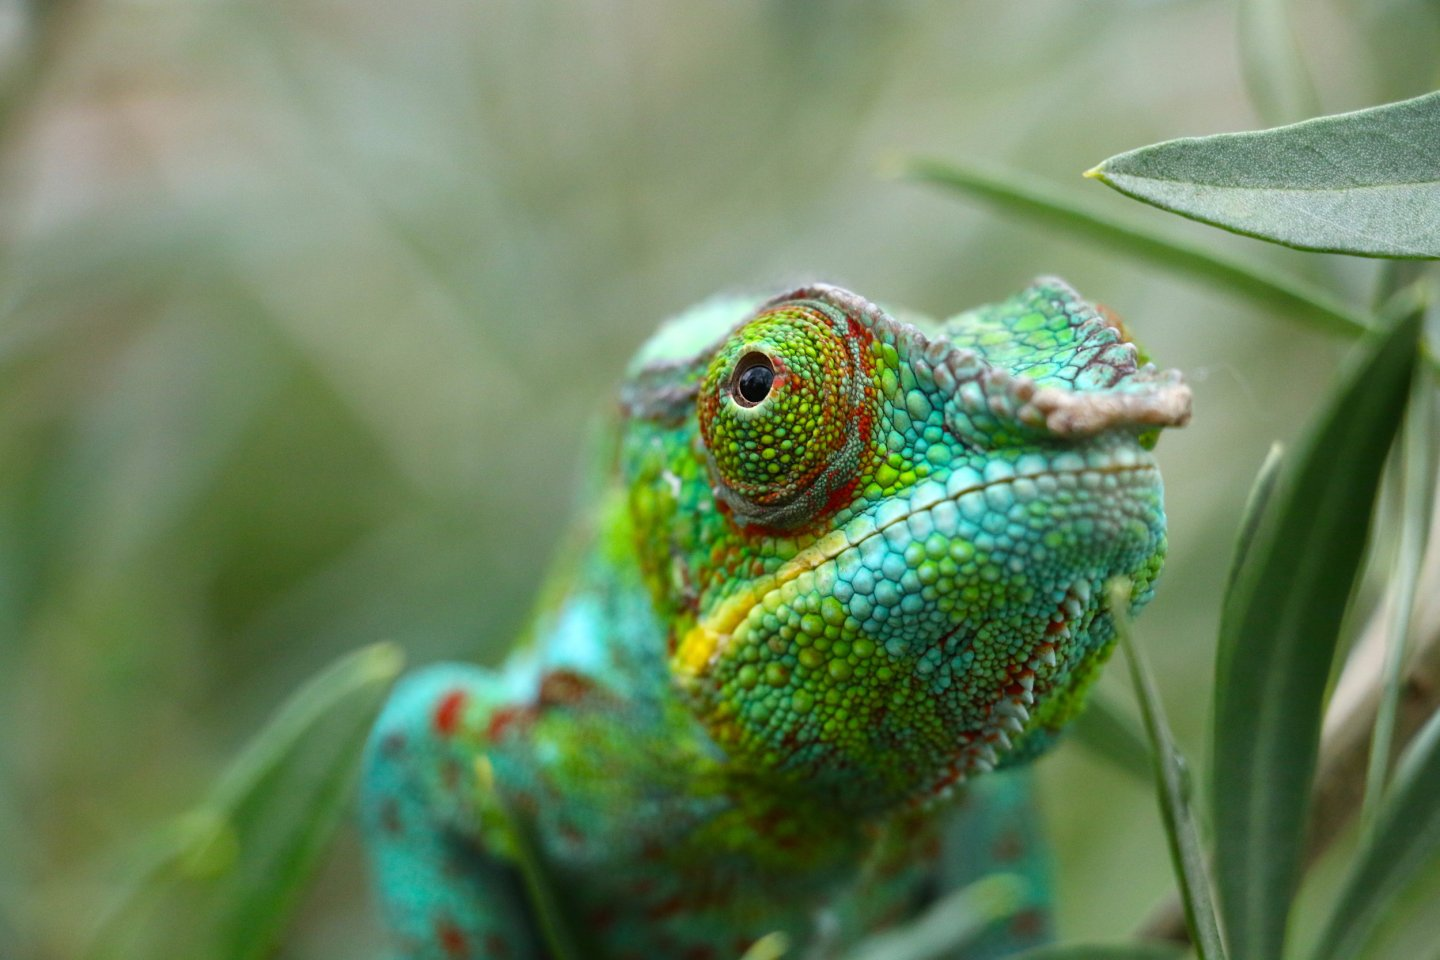 This chameleon is judging you